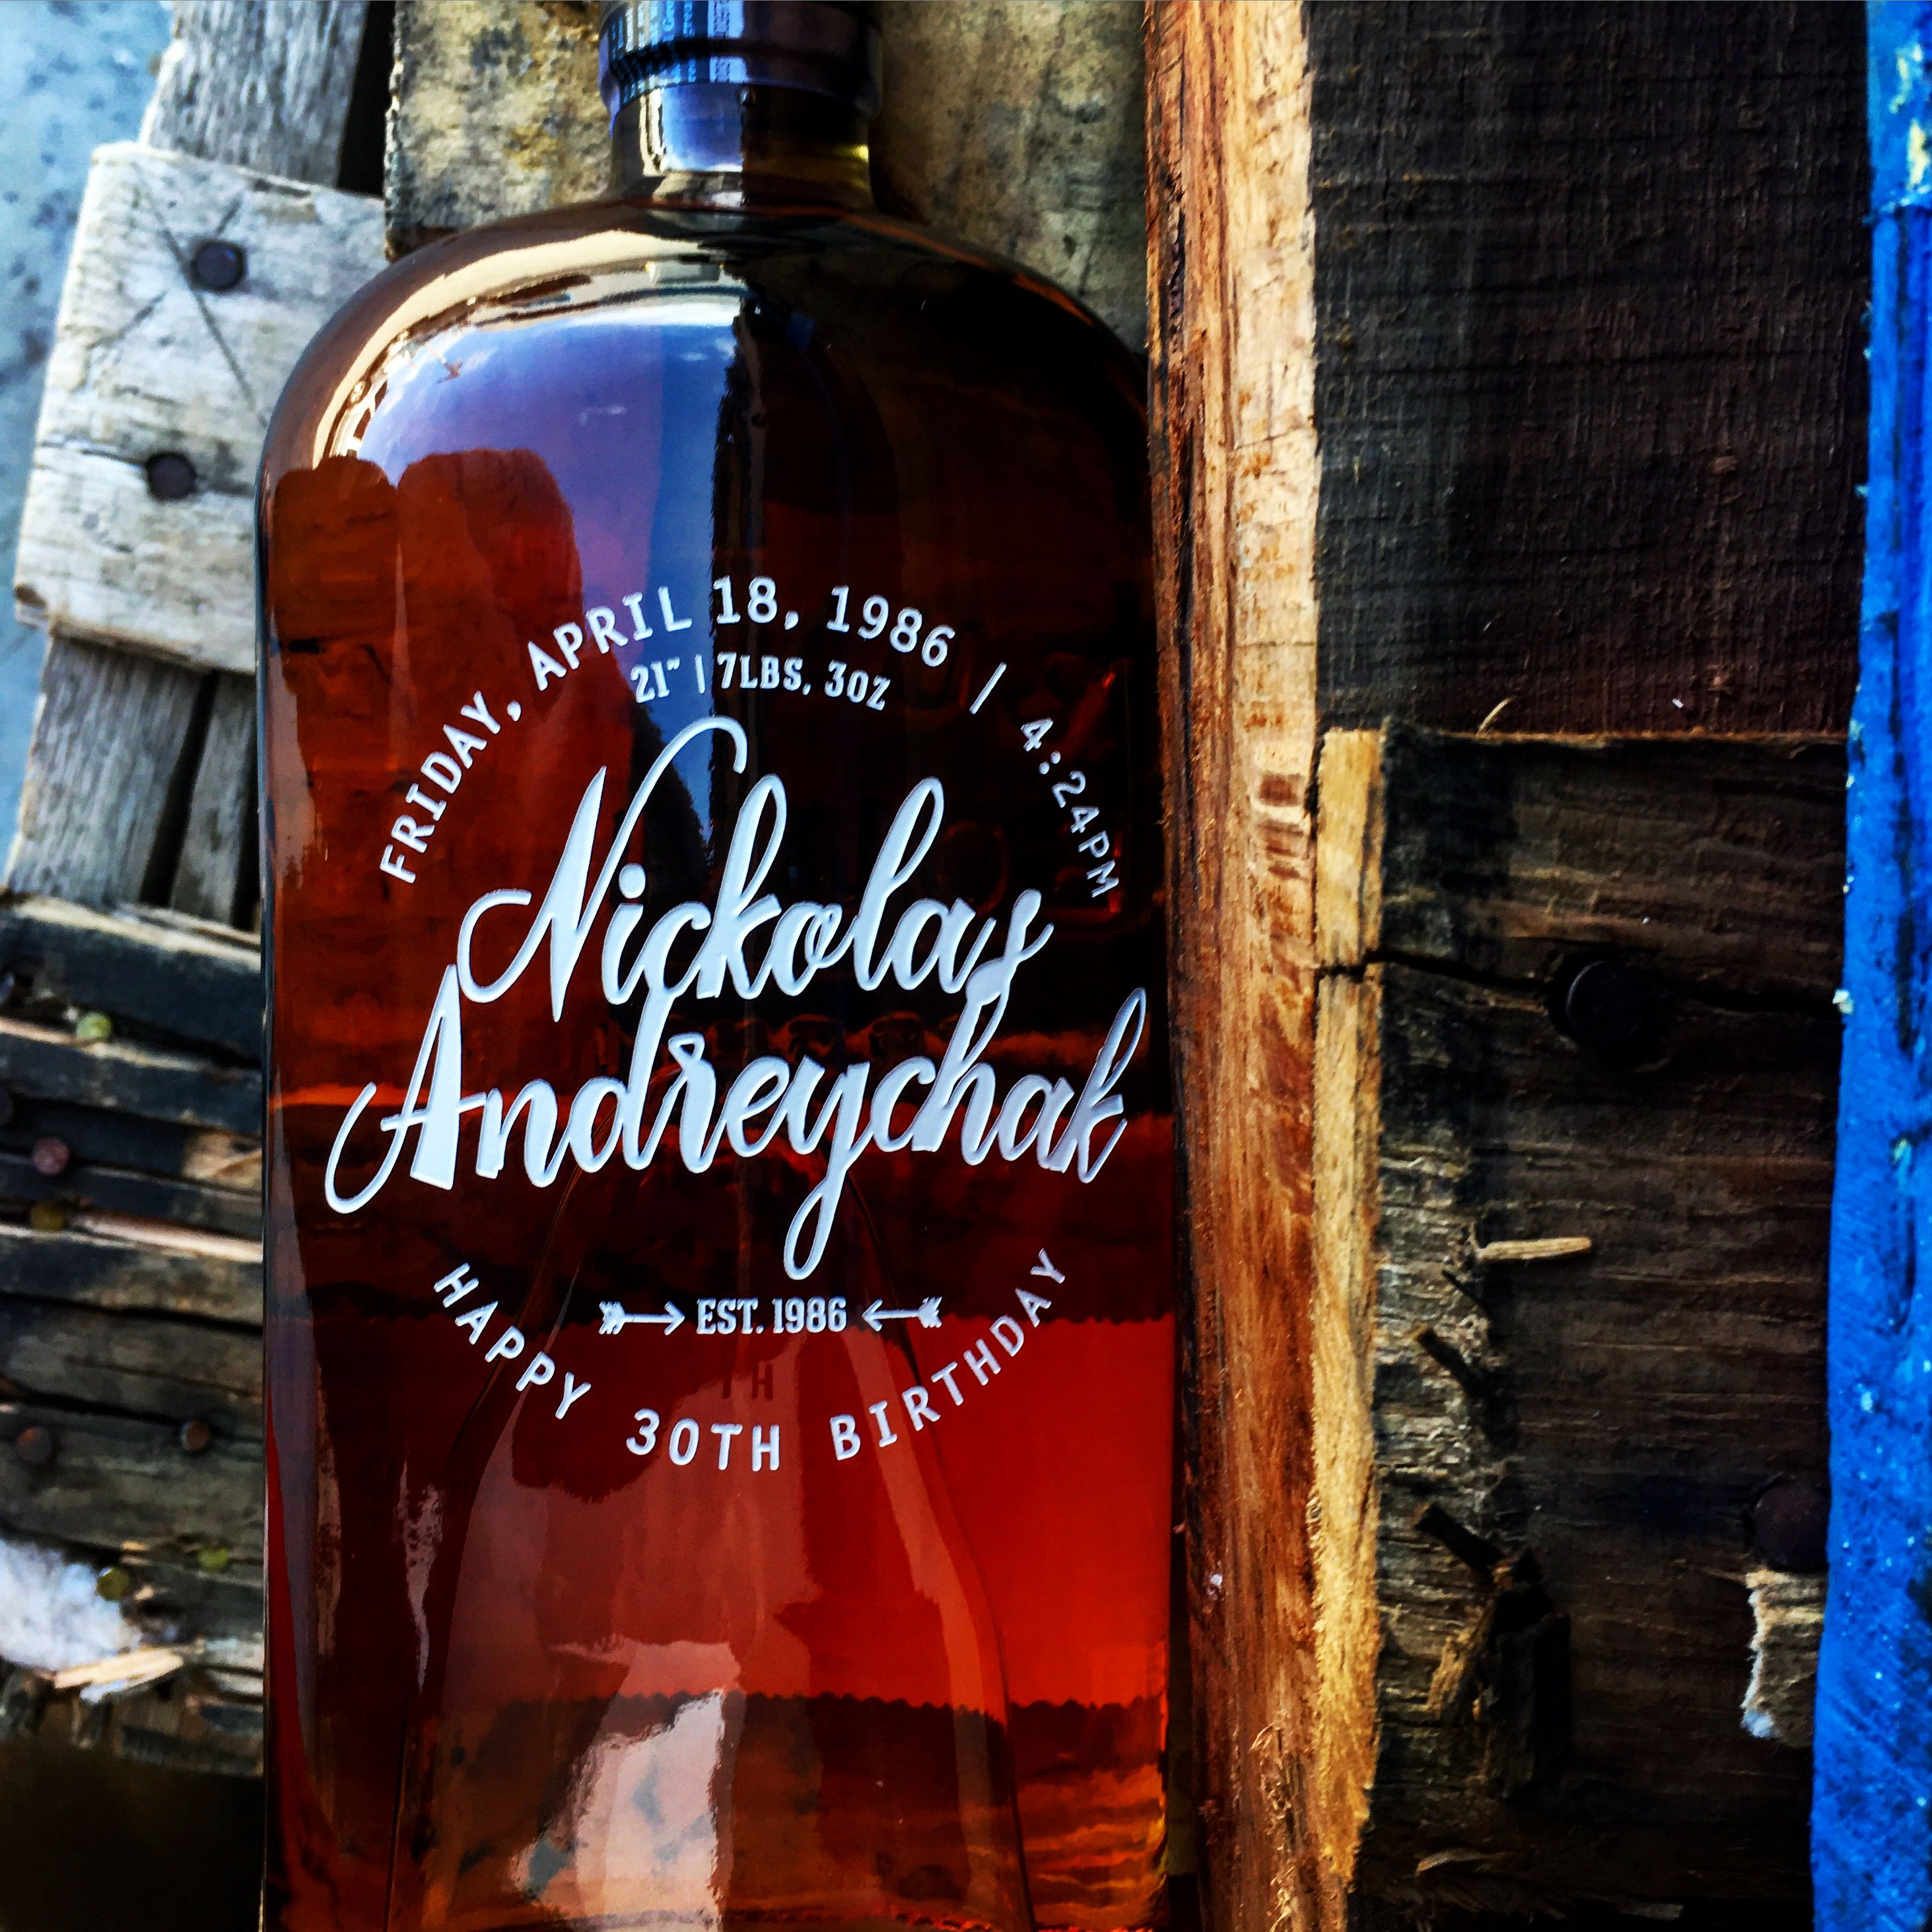 Cool Etched Bottle Of Bulleit Bourbon Great Birthday Gift From Etchingx Com Engraved Wine Bottles Bottle Personalized Wine Bottles